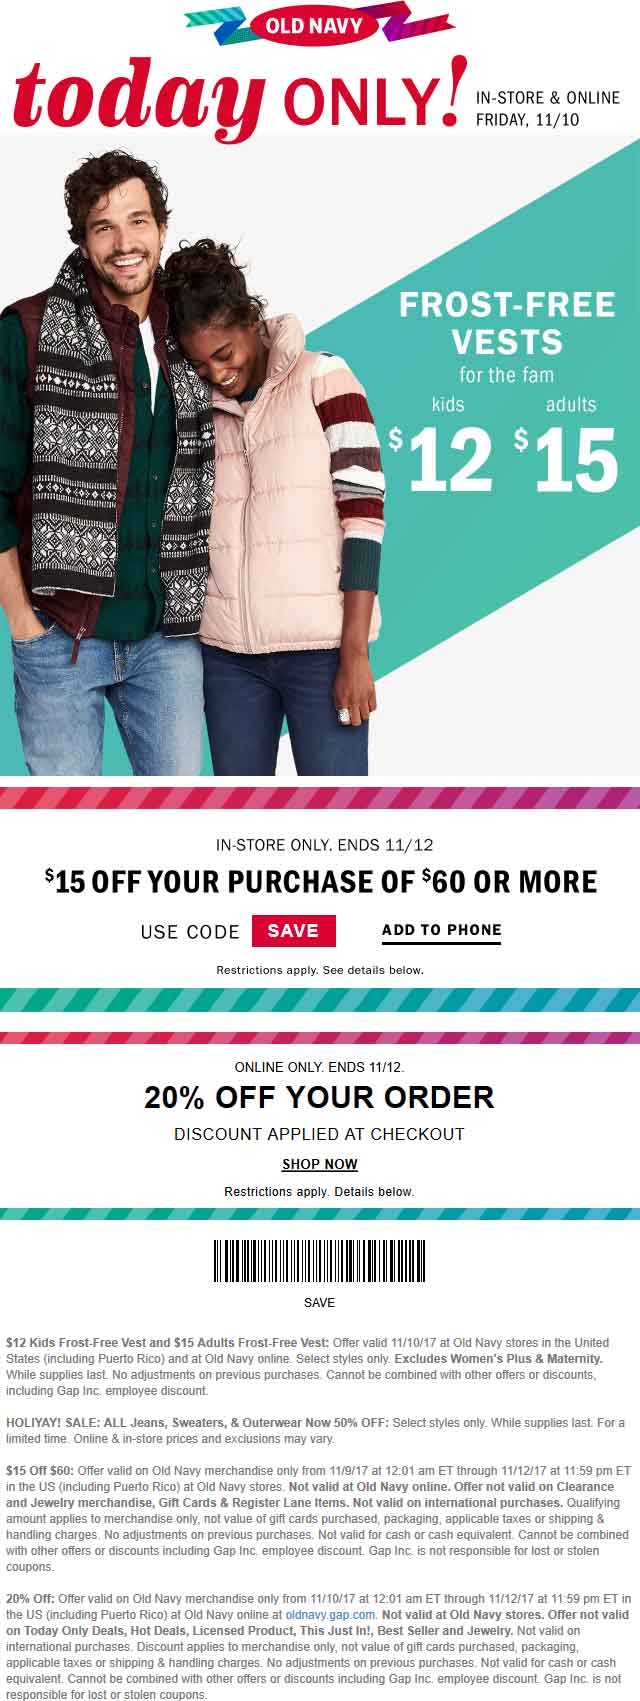 Old Navy Coupon December 2017 $15 Off $60 at Old Navy, or 20% online no code needed